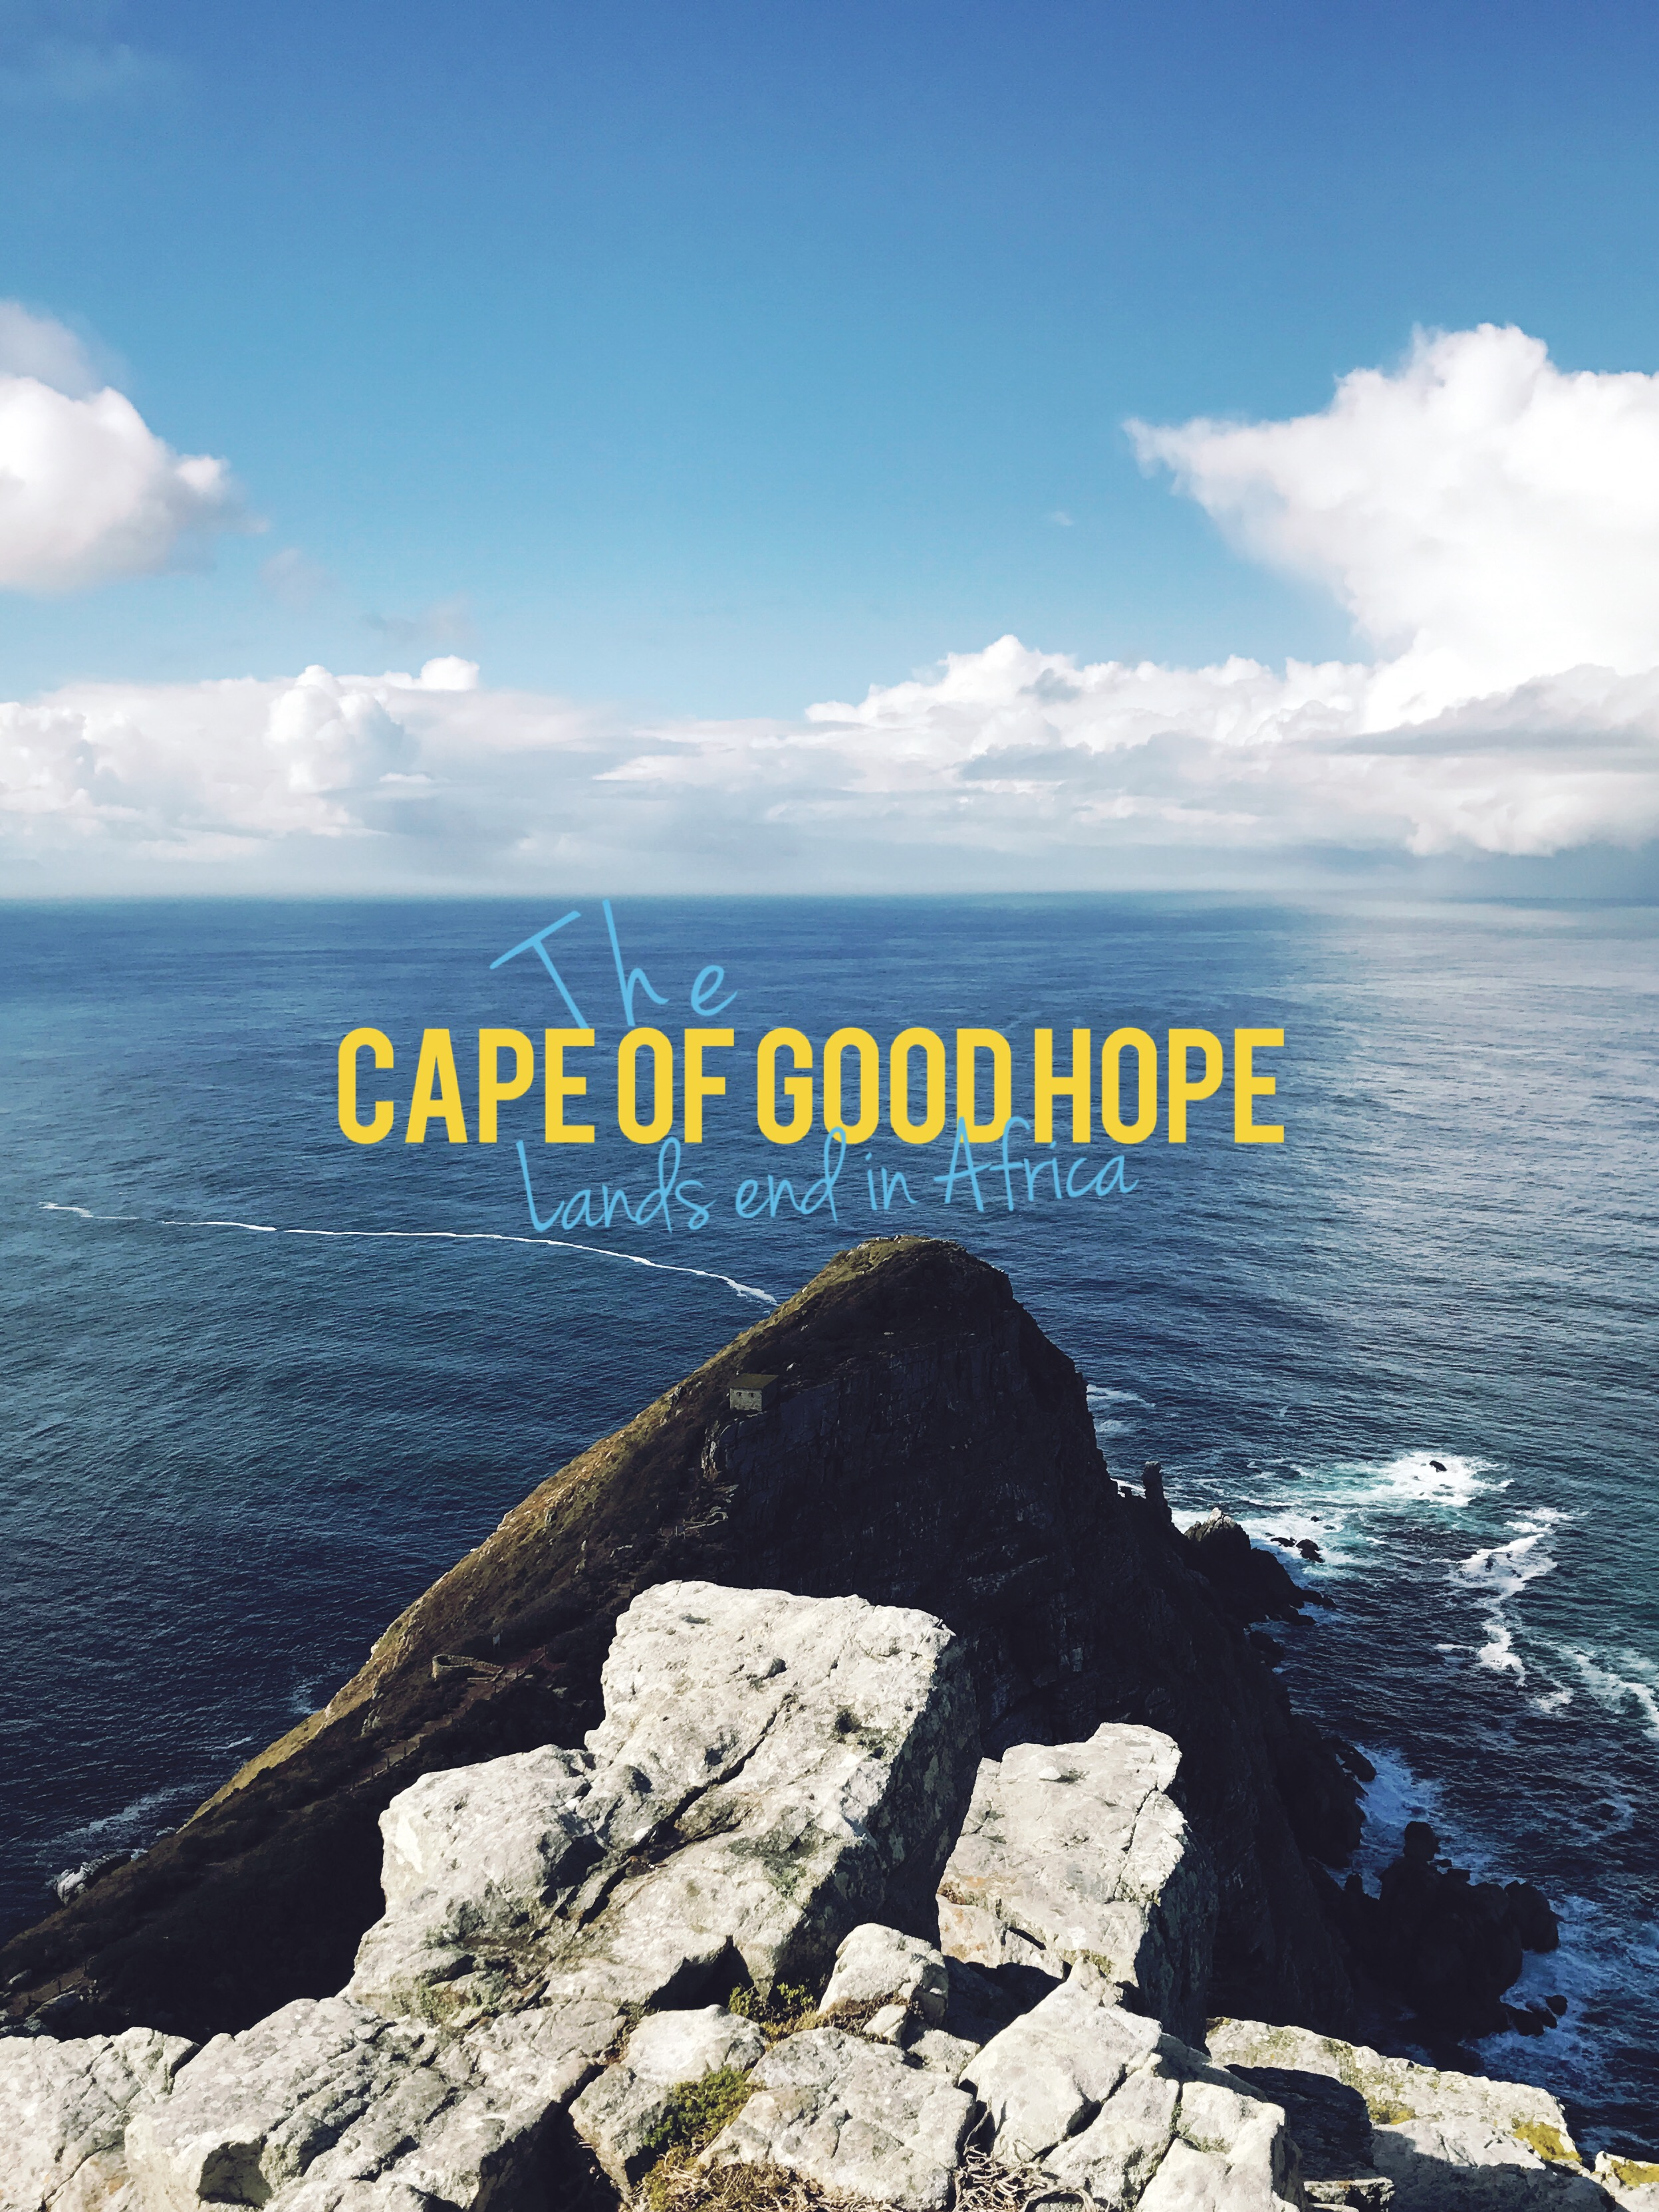 Self-driving Day Trip Guide to The Cape of Good Hope: The Lands End in Africa